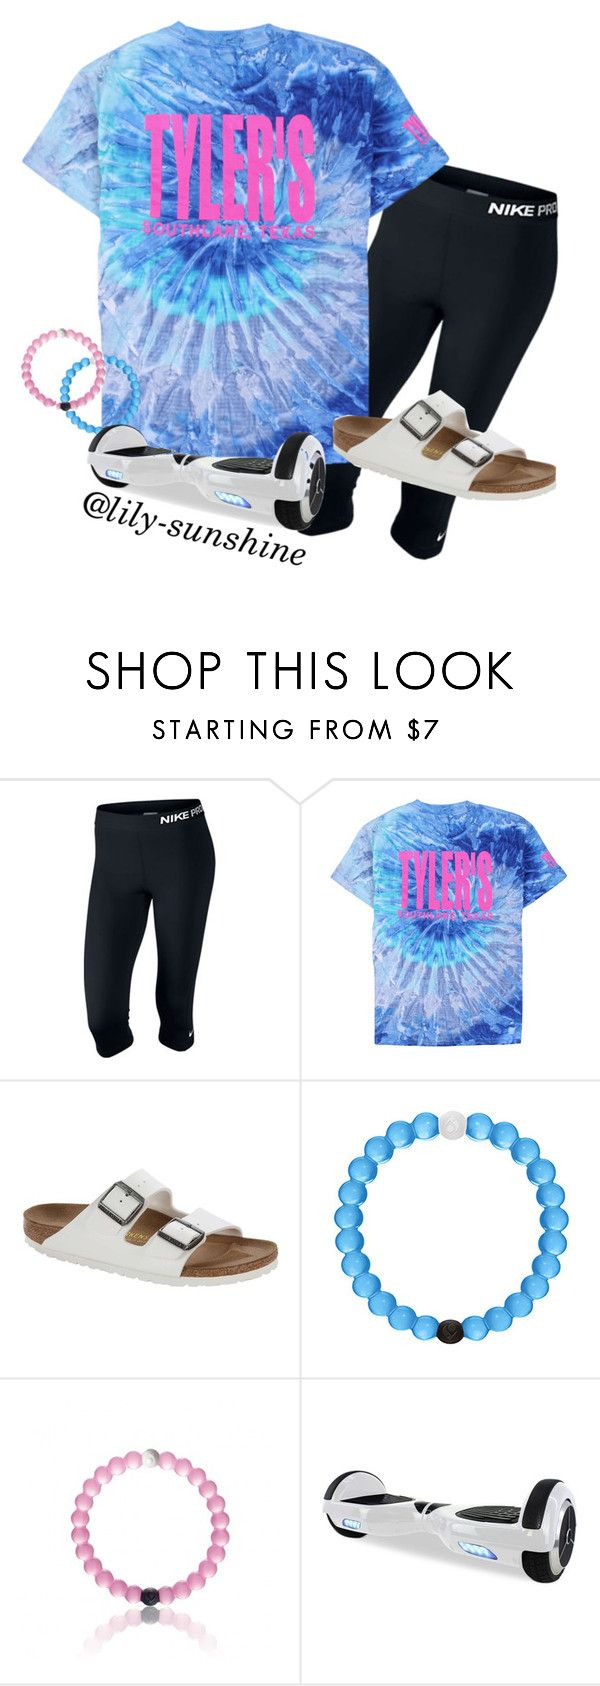 """""""I want this Tyler's shirt"""" by lily-sunshine ❤ liked on Polyvore featuring NIKE, Birkenstock, women's clothing, women's fashion, women, female, woman, misses and juniors"""